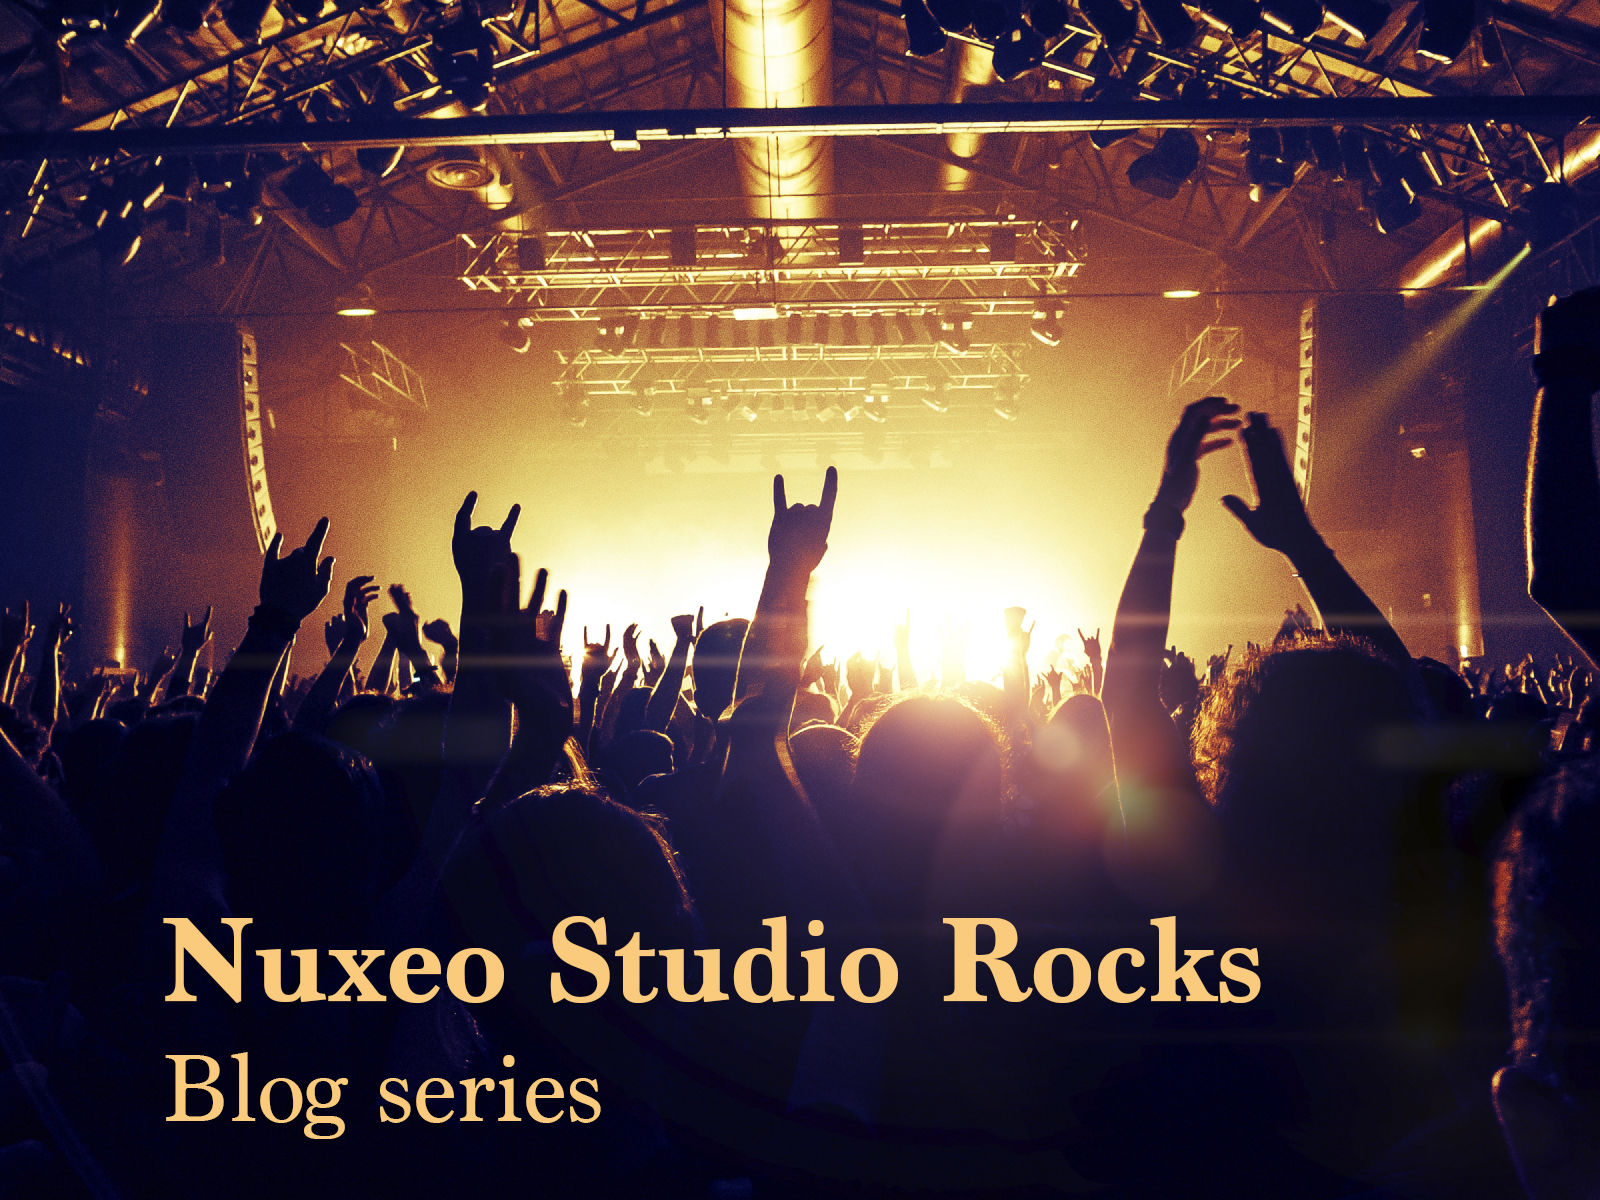 Nuxeo Studio Rocks! Route Your Workflow Based on Document Metadata